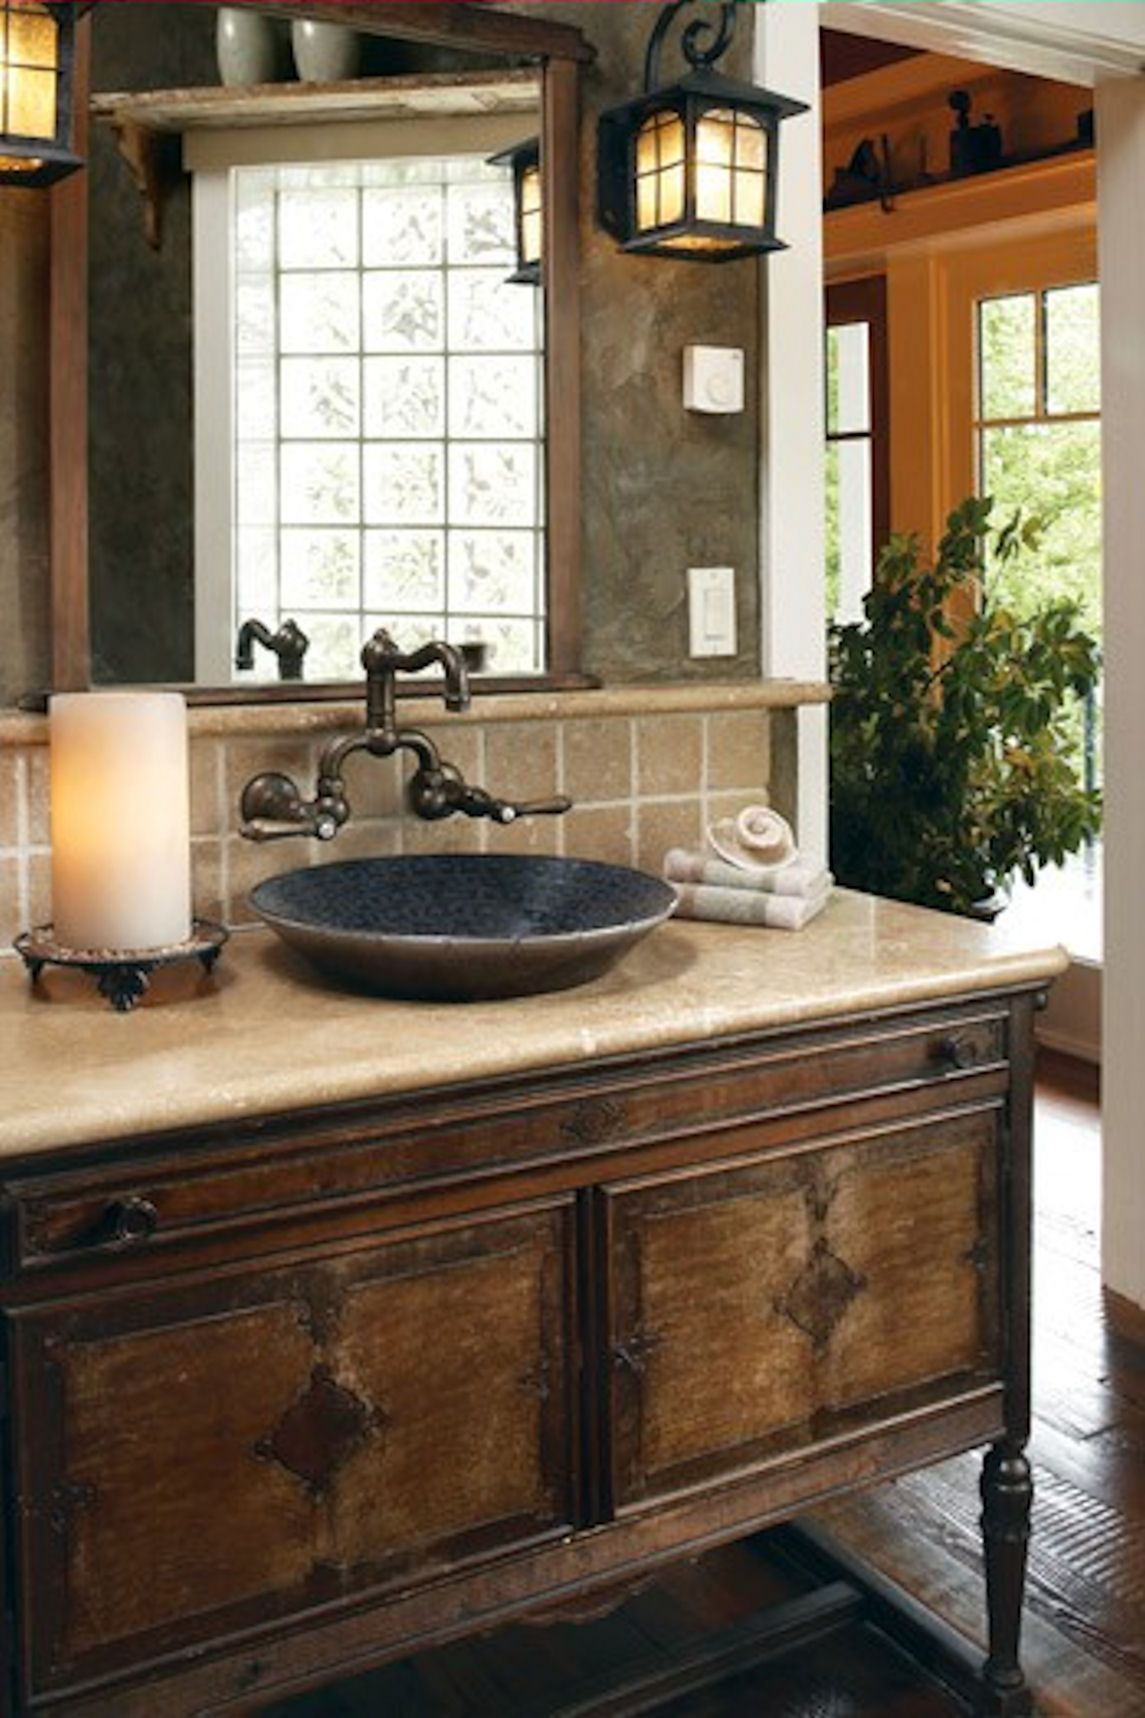 15 Amazing Bathroom Sink Design Ideas You Have To See